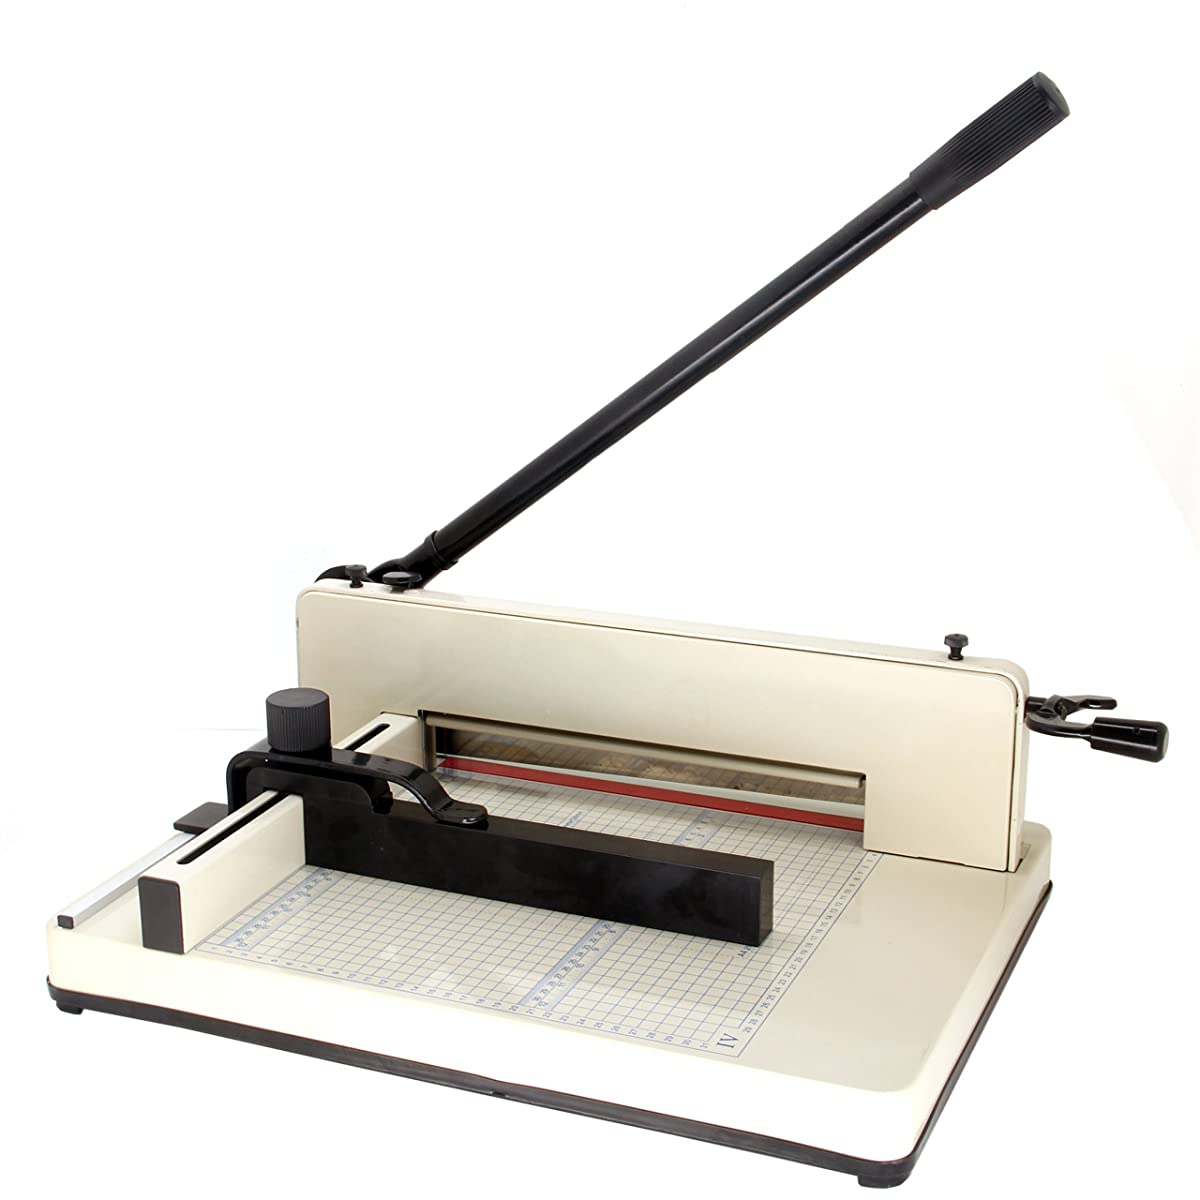 """HFS (R) New Heavy Duty Guillotine Paper Cutter - 12"""" Commercial Metal Base A3/A4 Trimmer"""